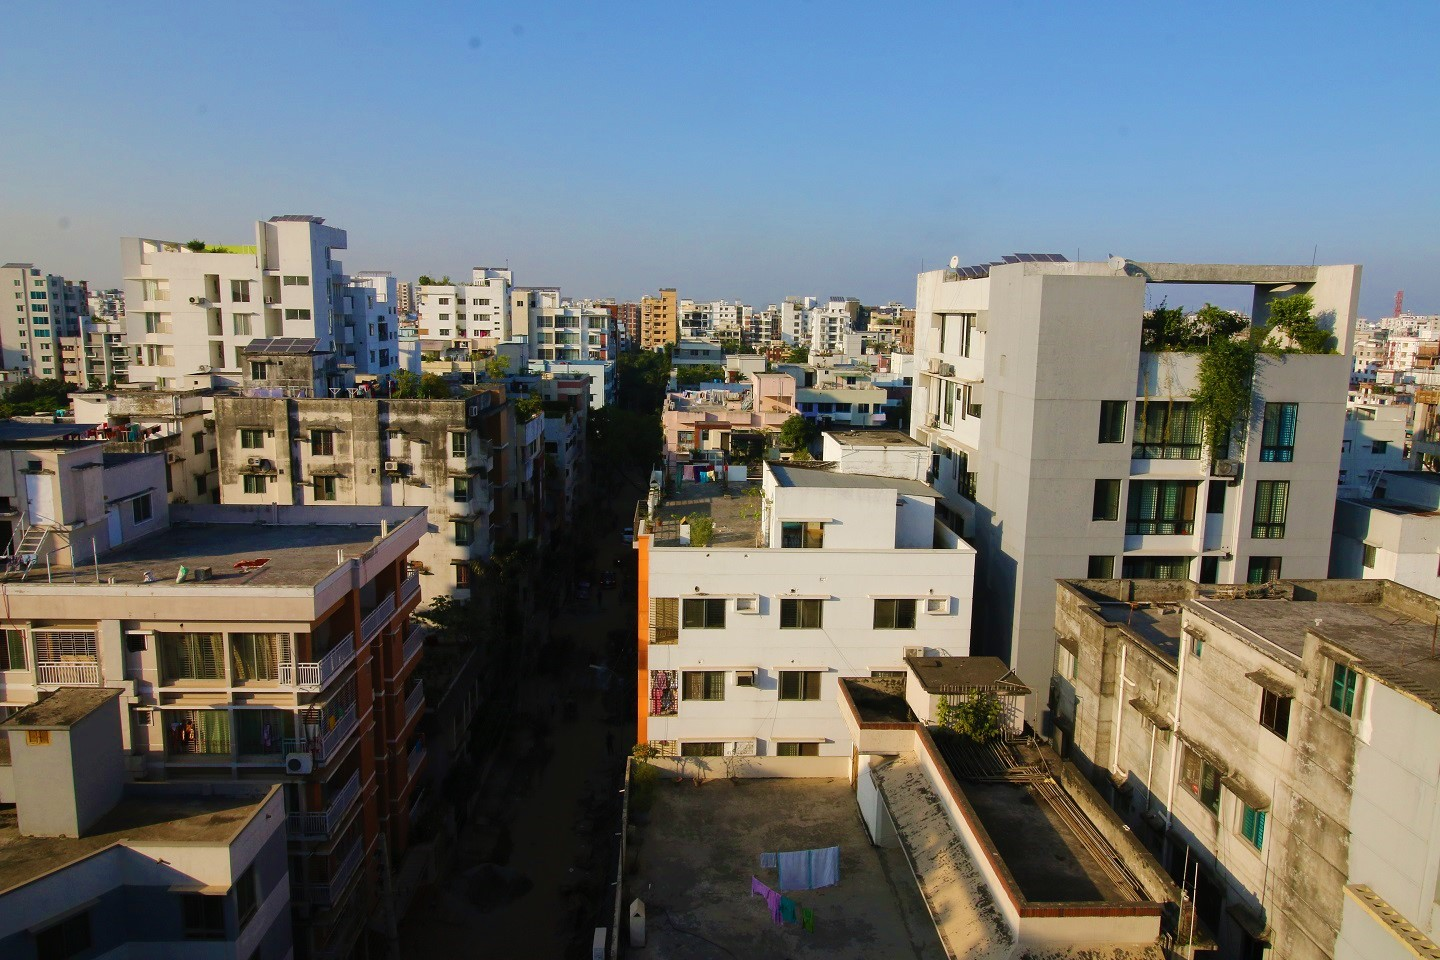 Apartment constructions in Bangladesh is on the rise due to high demand for accomodation